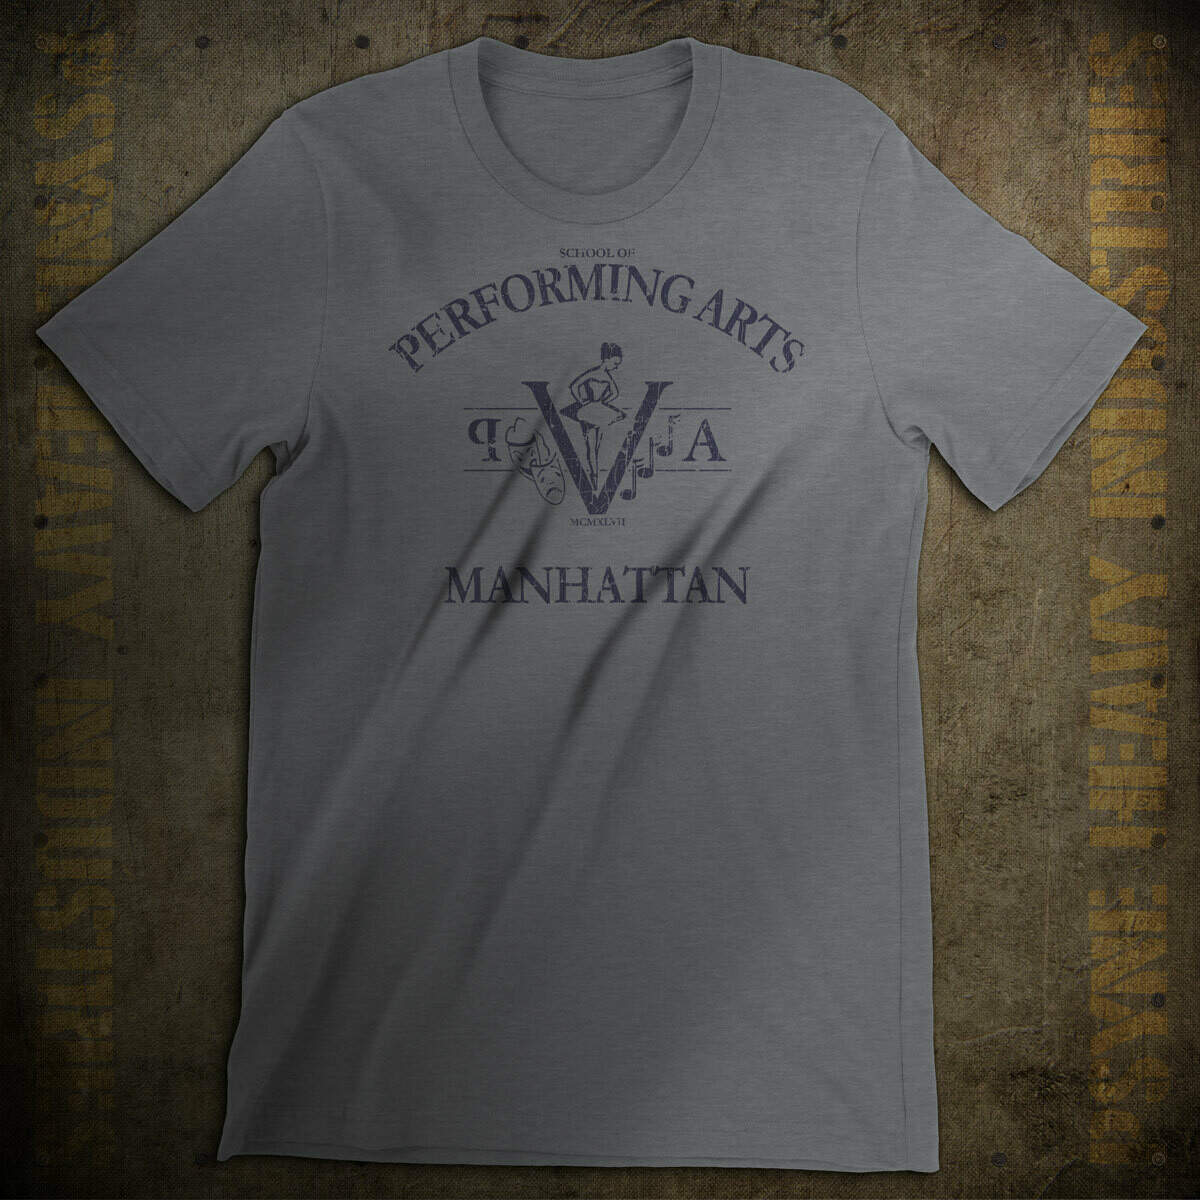 High School of Performing Arts Vintage Manhattan NYC T-Shirt